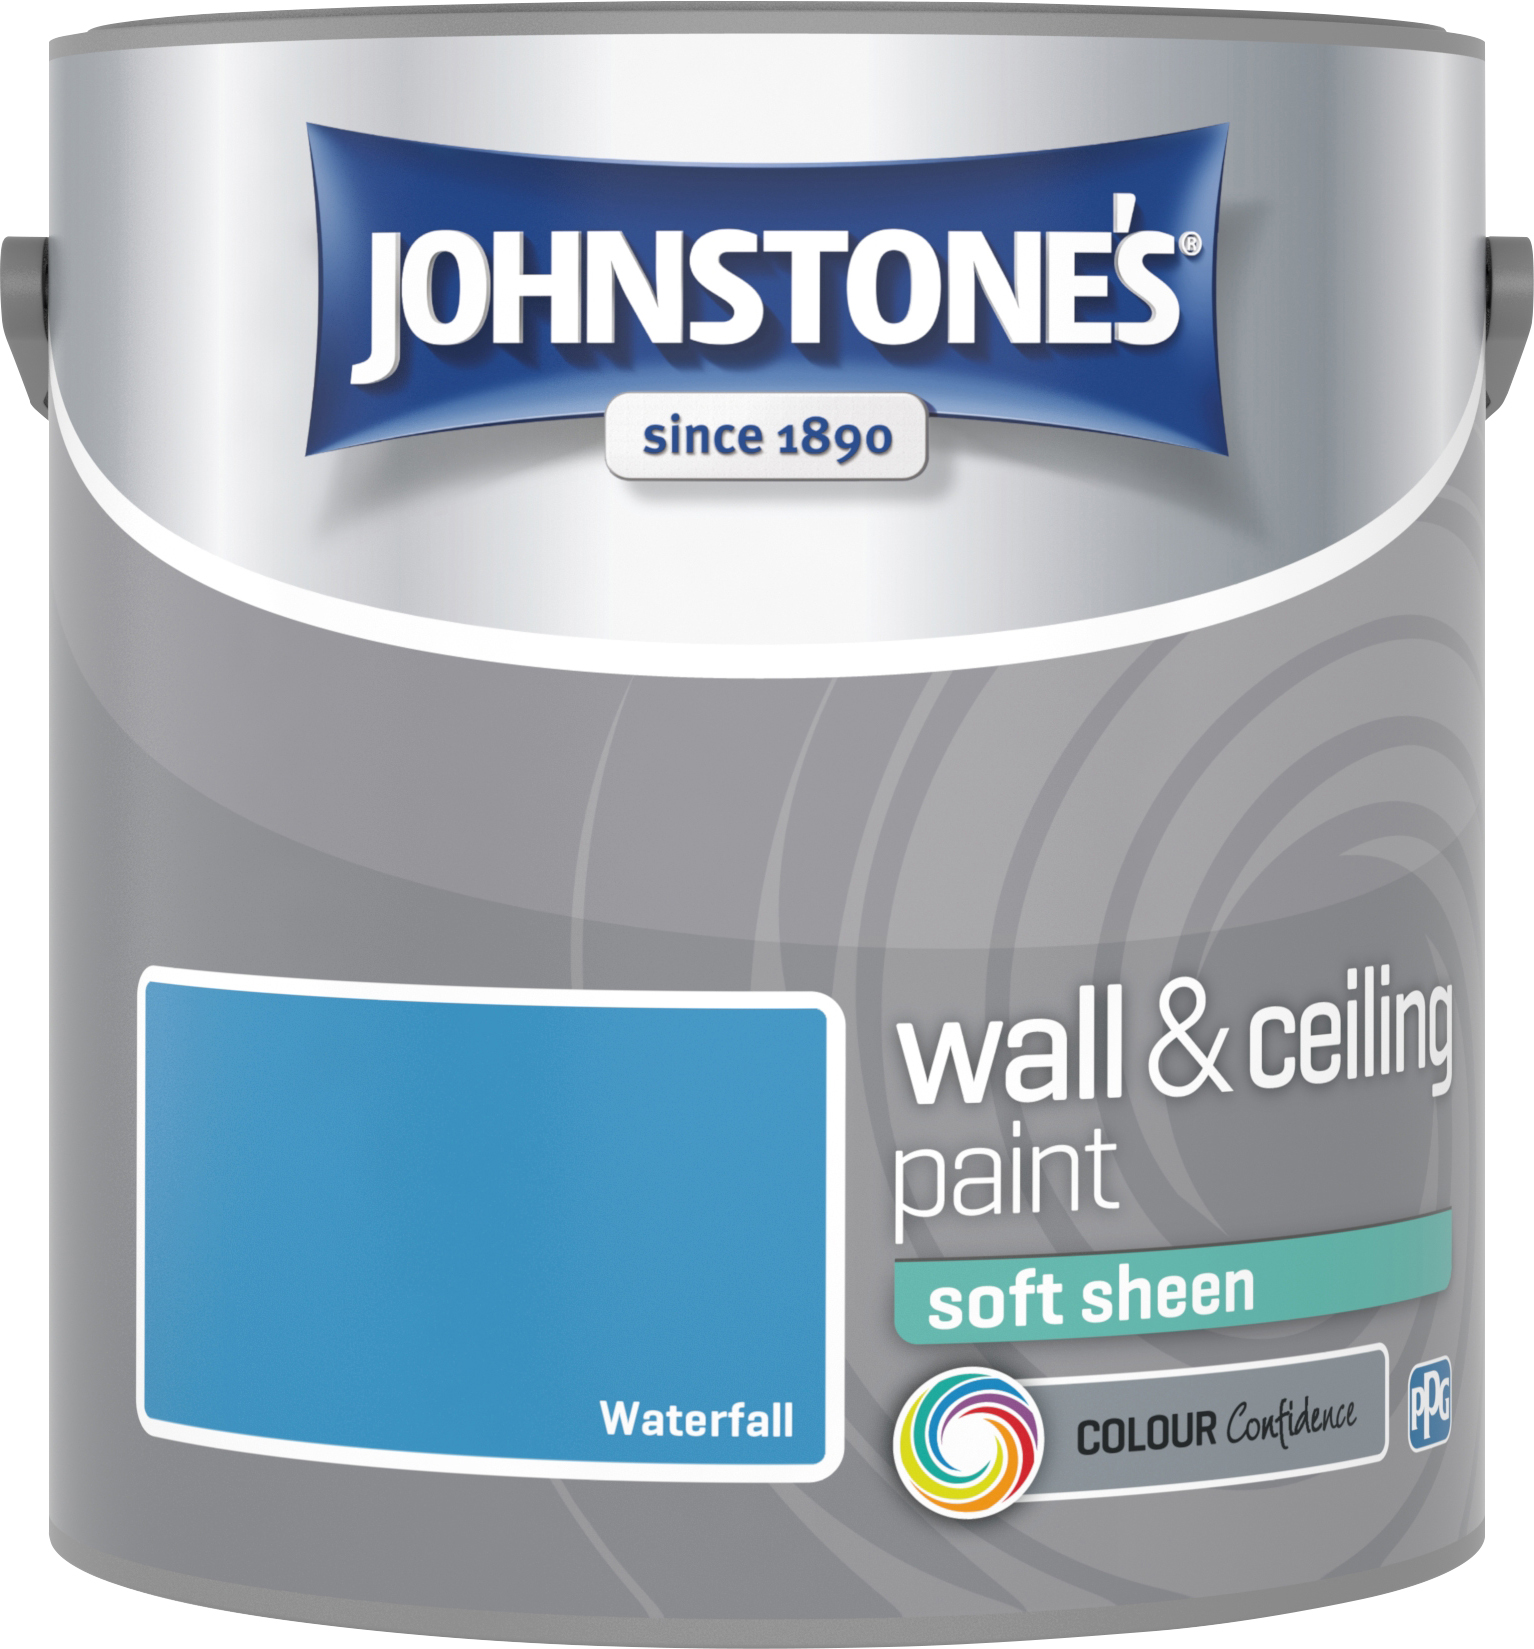 Johnstone's 304175 2.5 Litre Soft Sheen Emulsion Paint - Waterfall